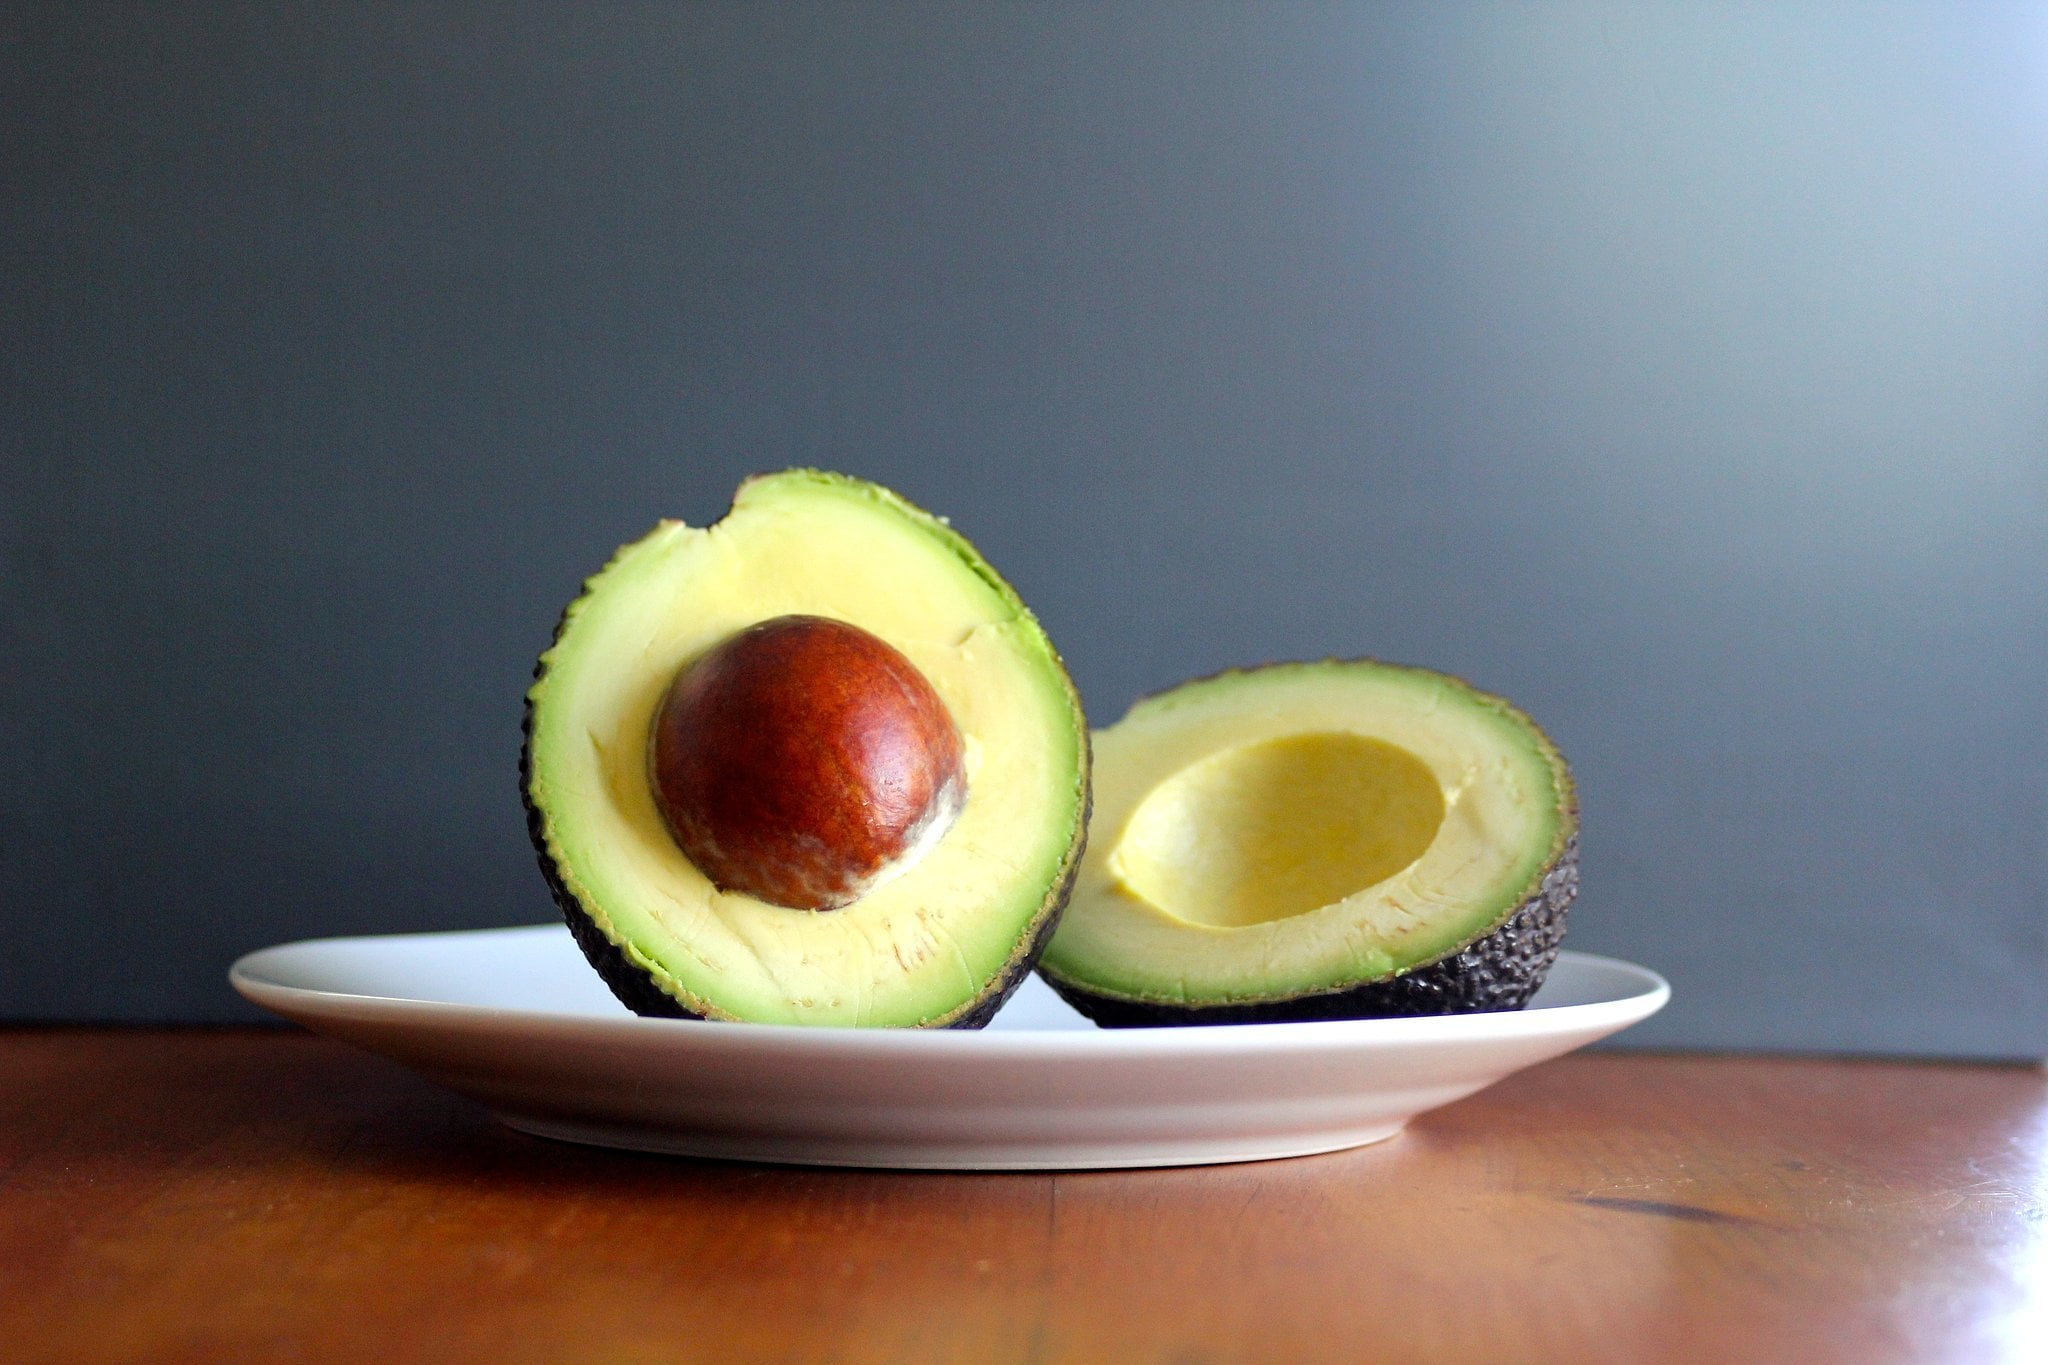 Healthy Foods Don't Mean All-You-Can-Eat